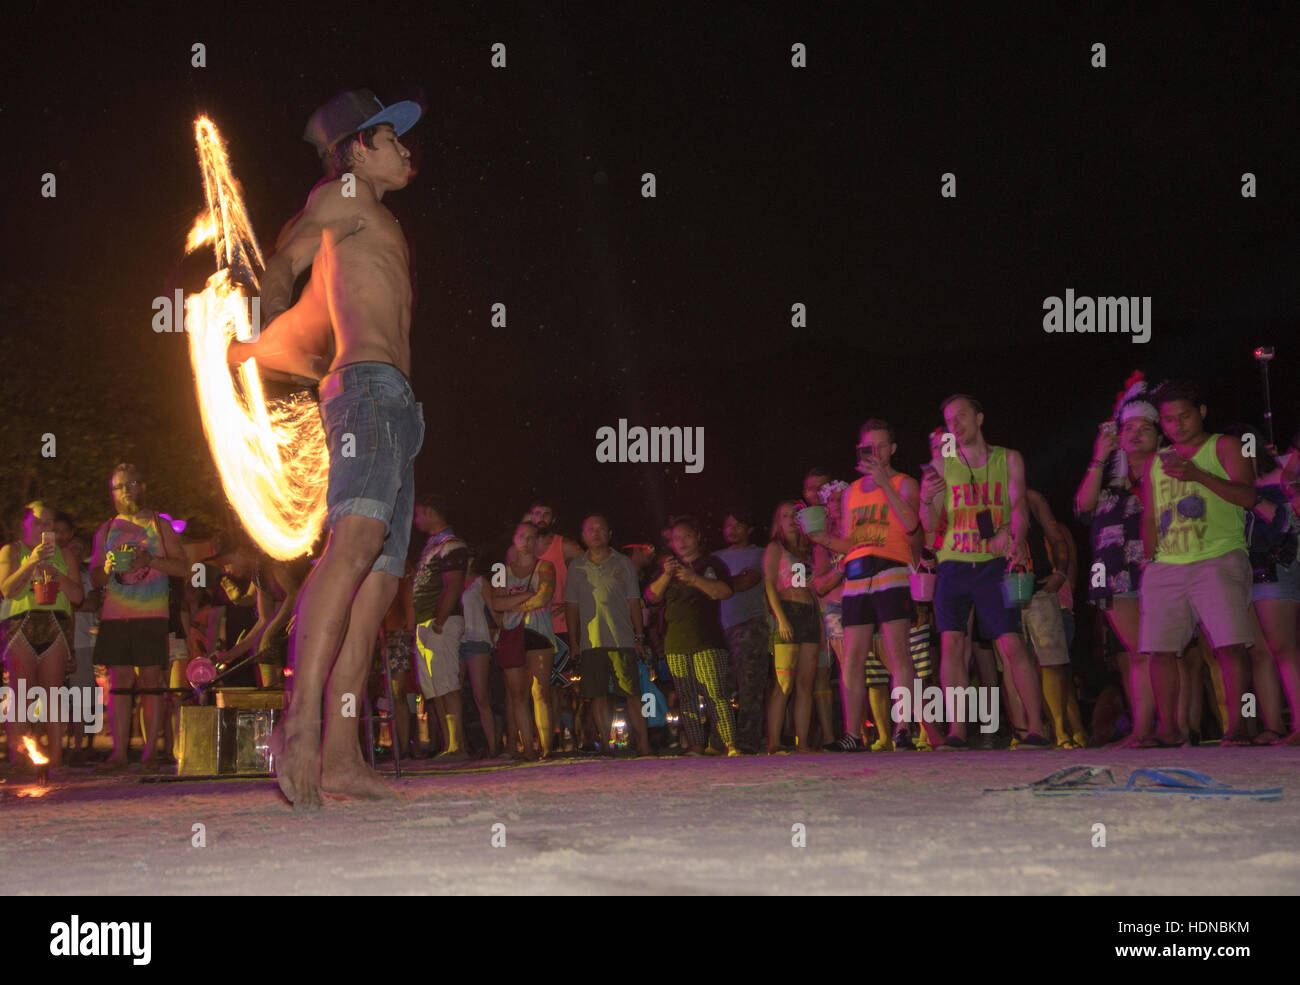 A display of fire dancing at a Full Moon party on Sunrise beach Haad Rin on the island of Kho Phag Nang Thailand - Stock Image